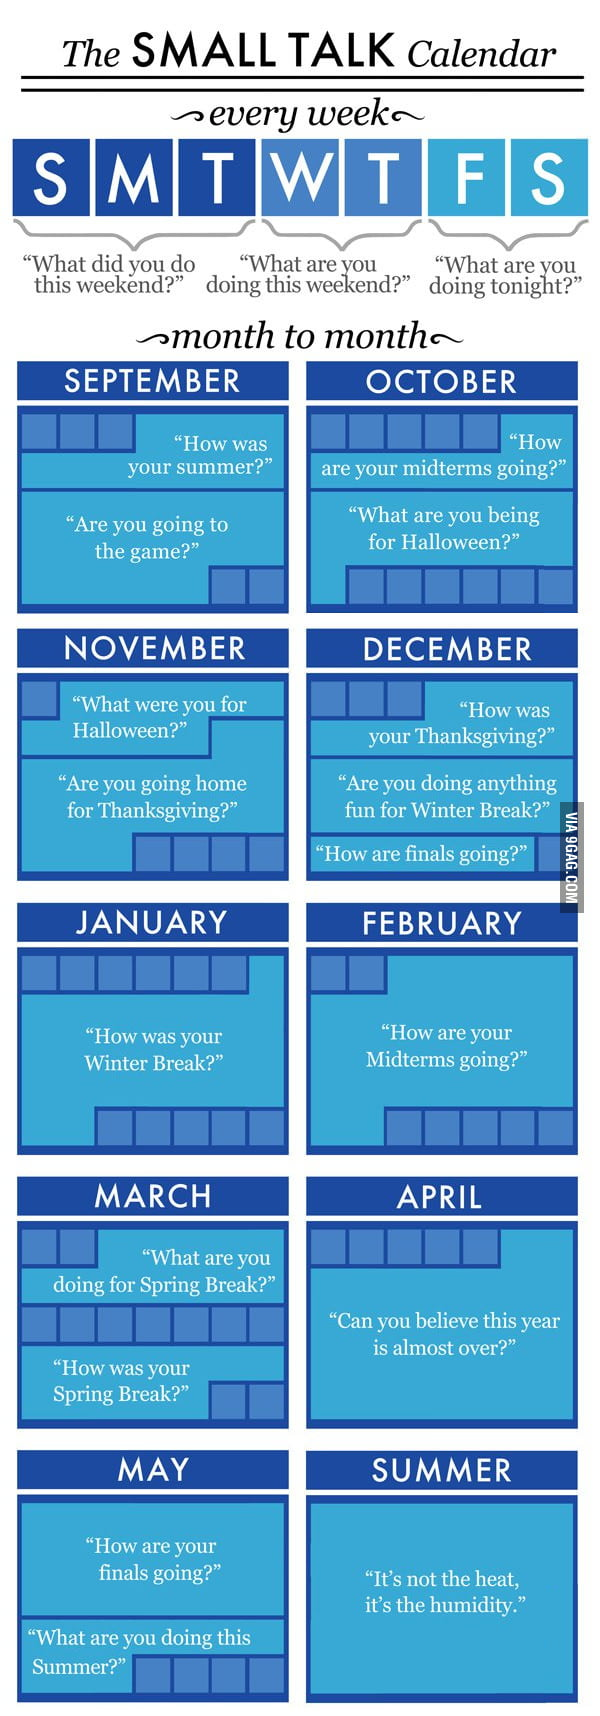 The Small Talk Calendar